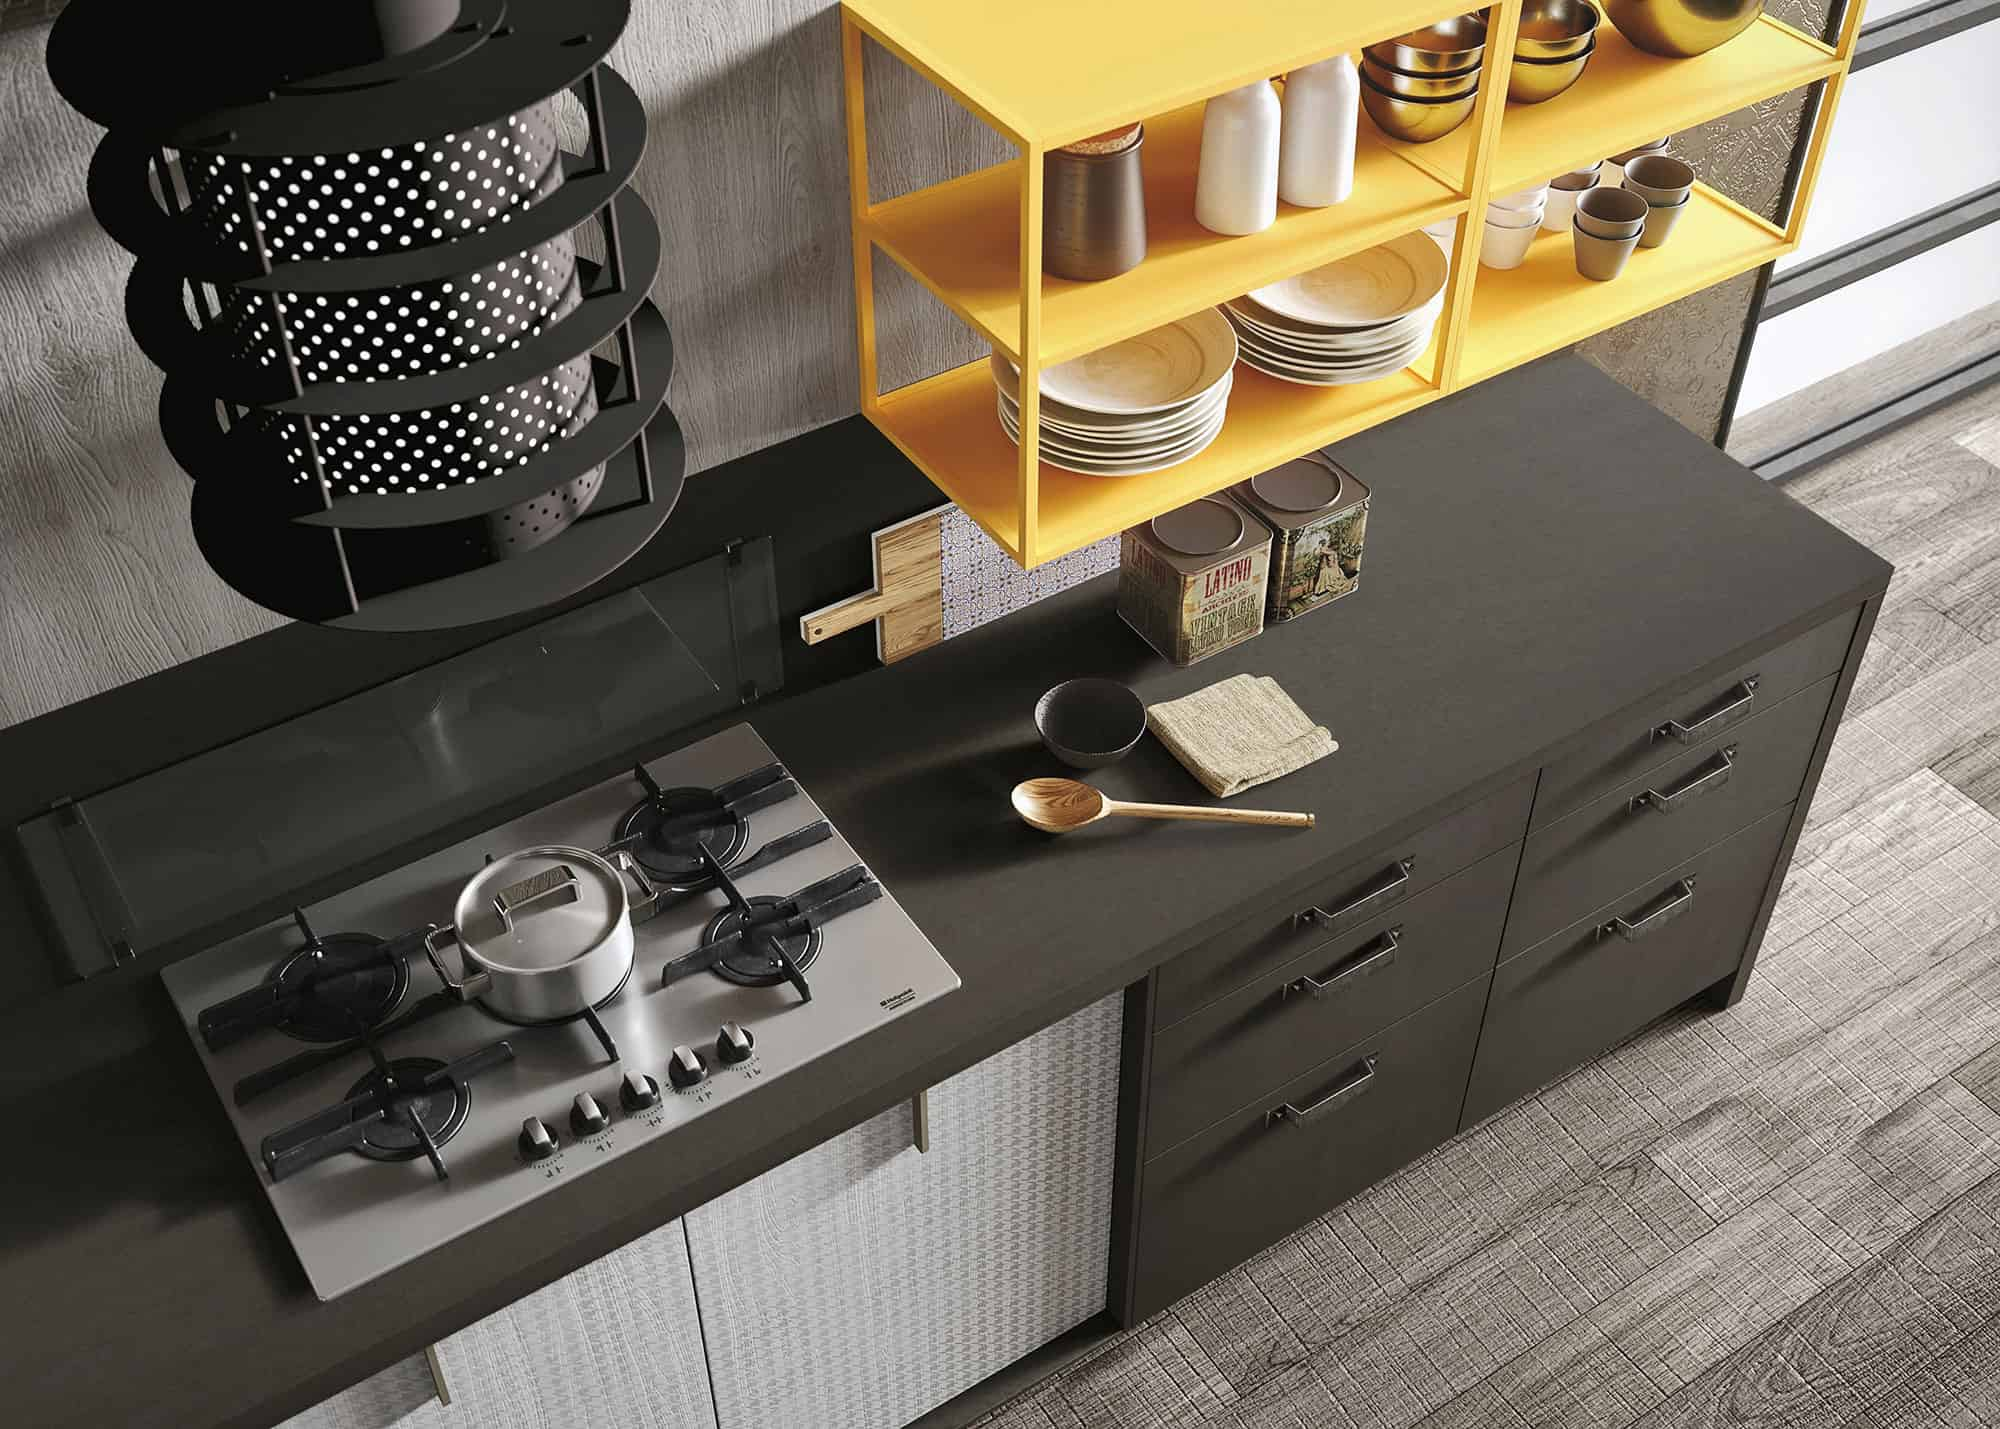 Cucina Ultramoderna Kitchen Design For Lofts 3 Urban Ideas From Snaidero